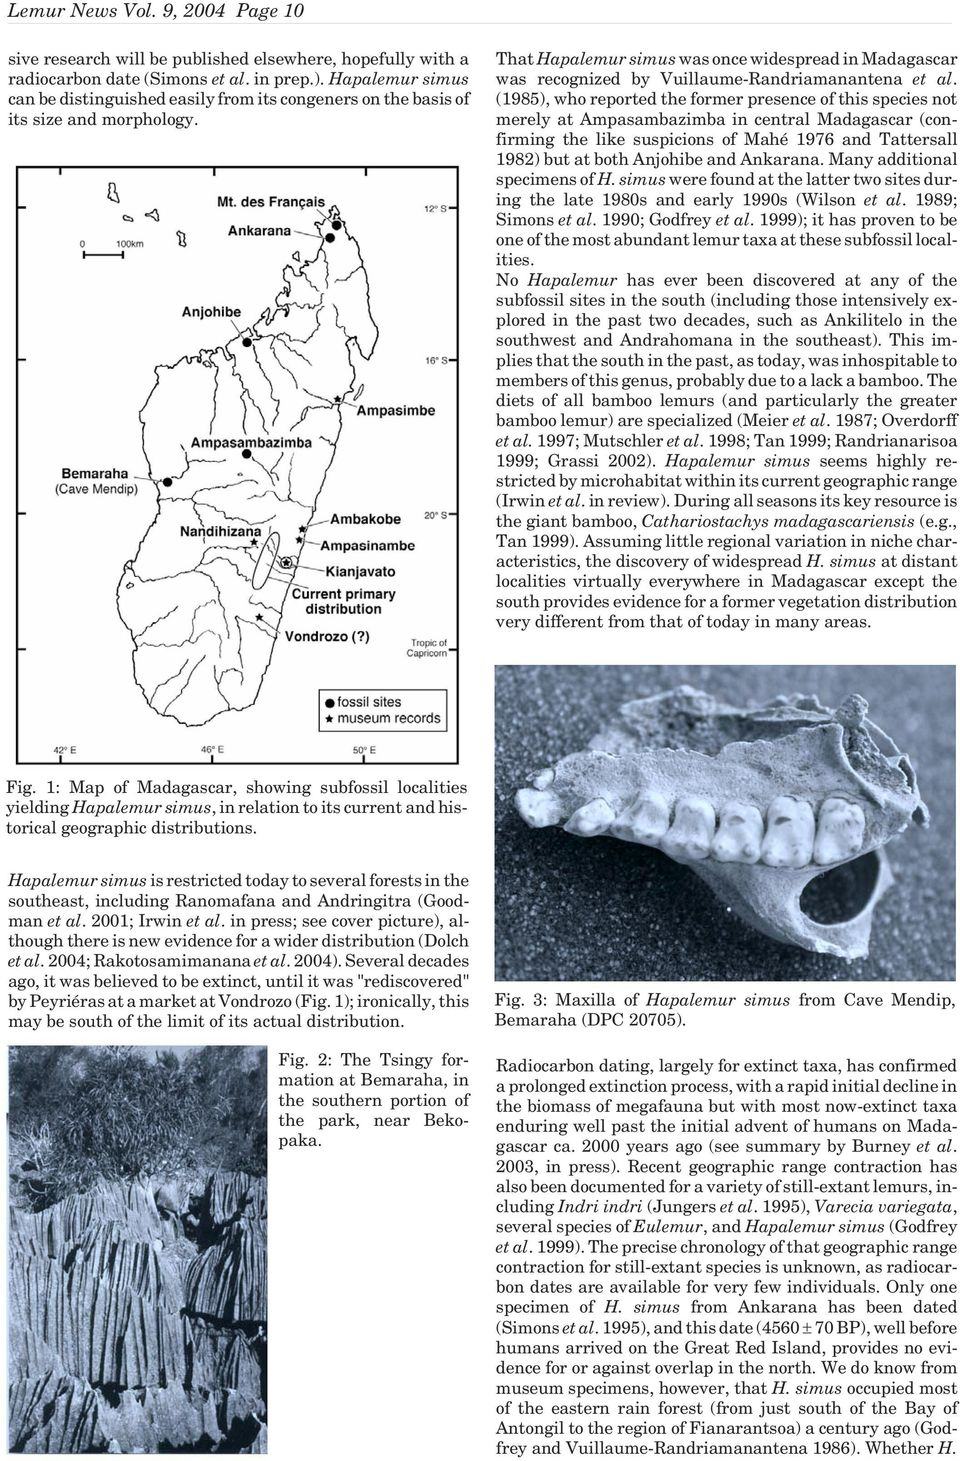 That Hapalemur simus was once widespread in Madagascar was recognized by Vuillaume-Randriamanantena et al.